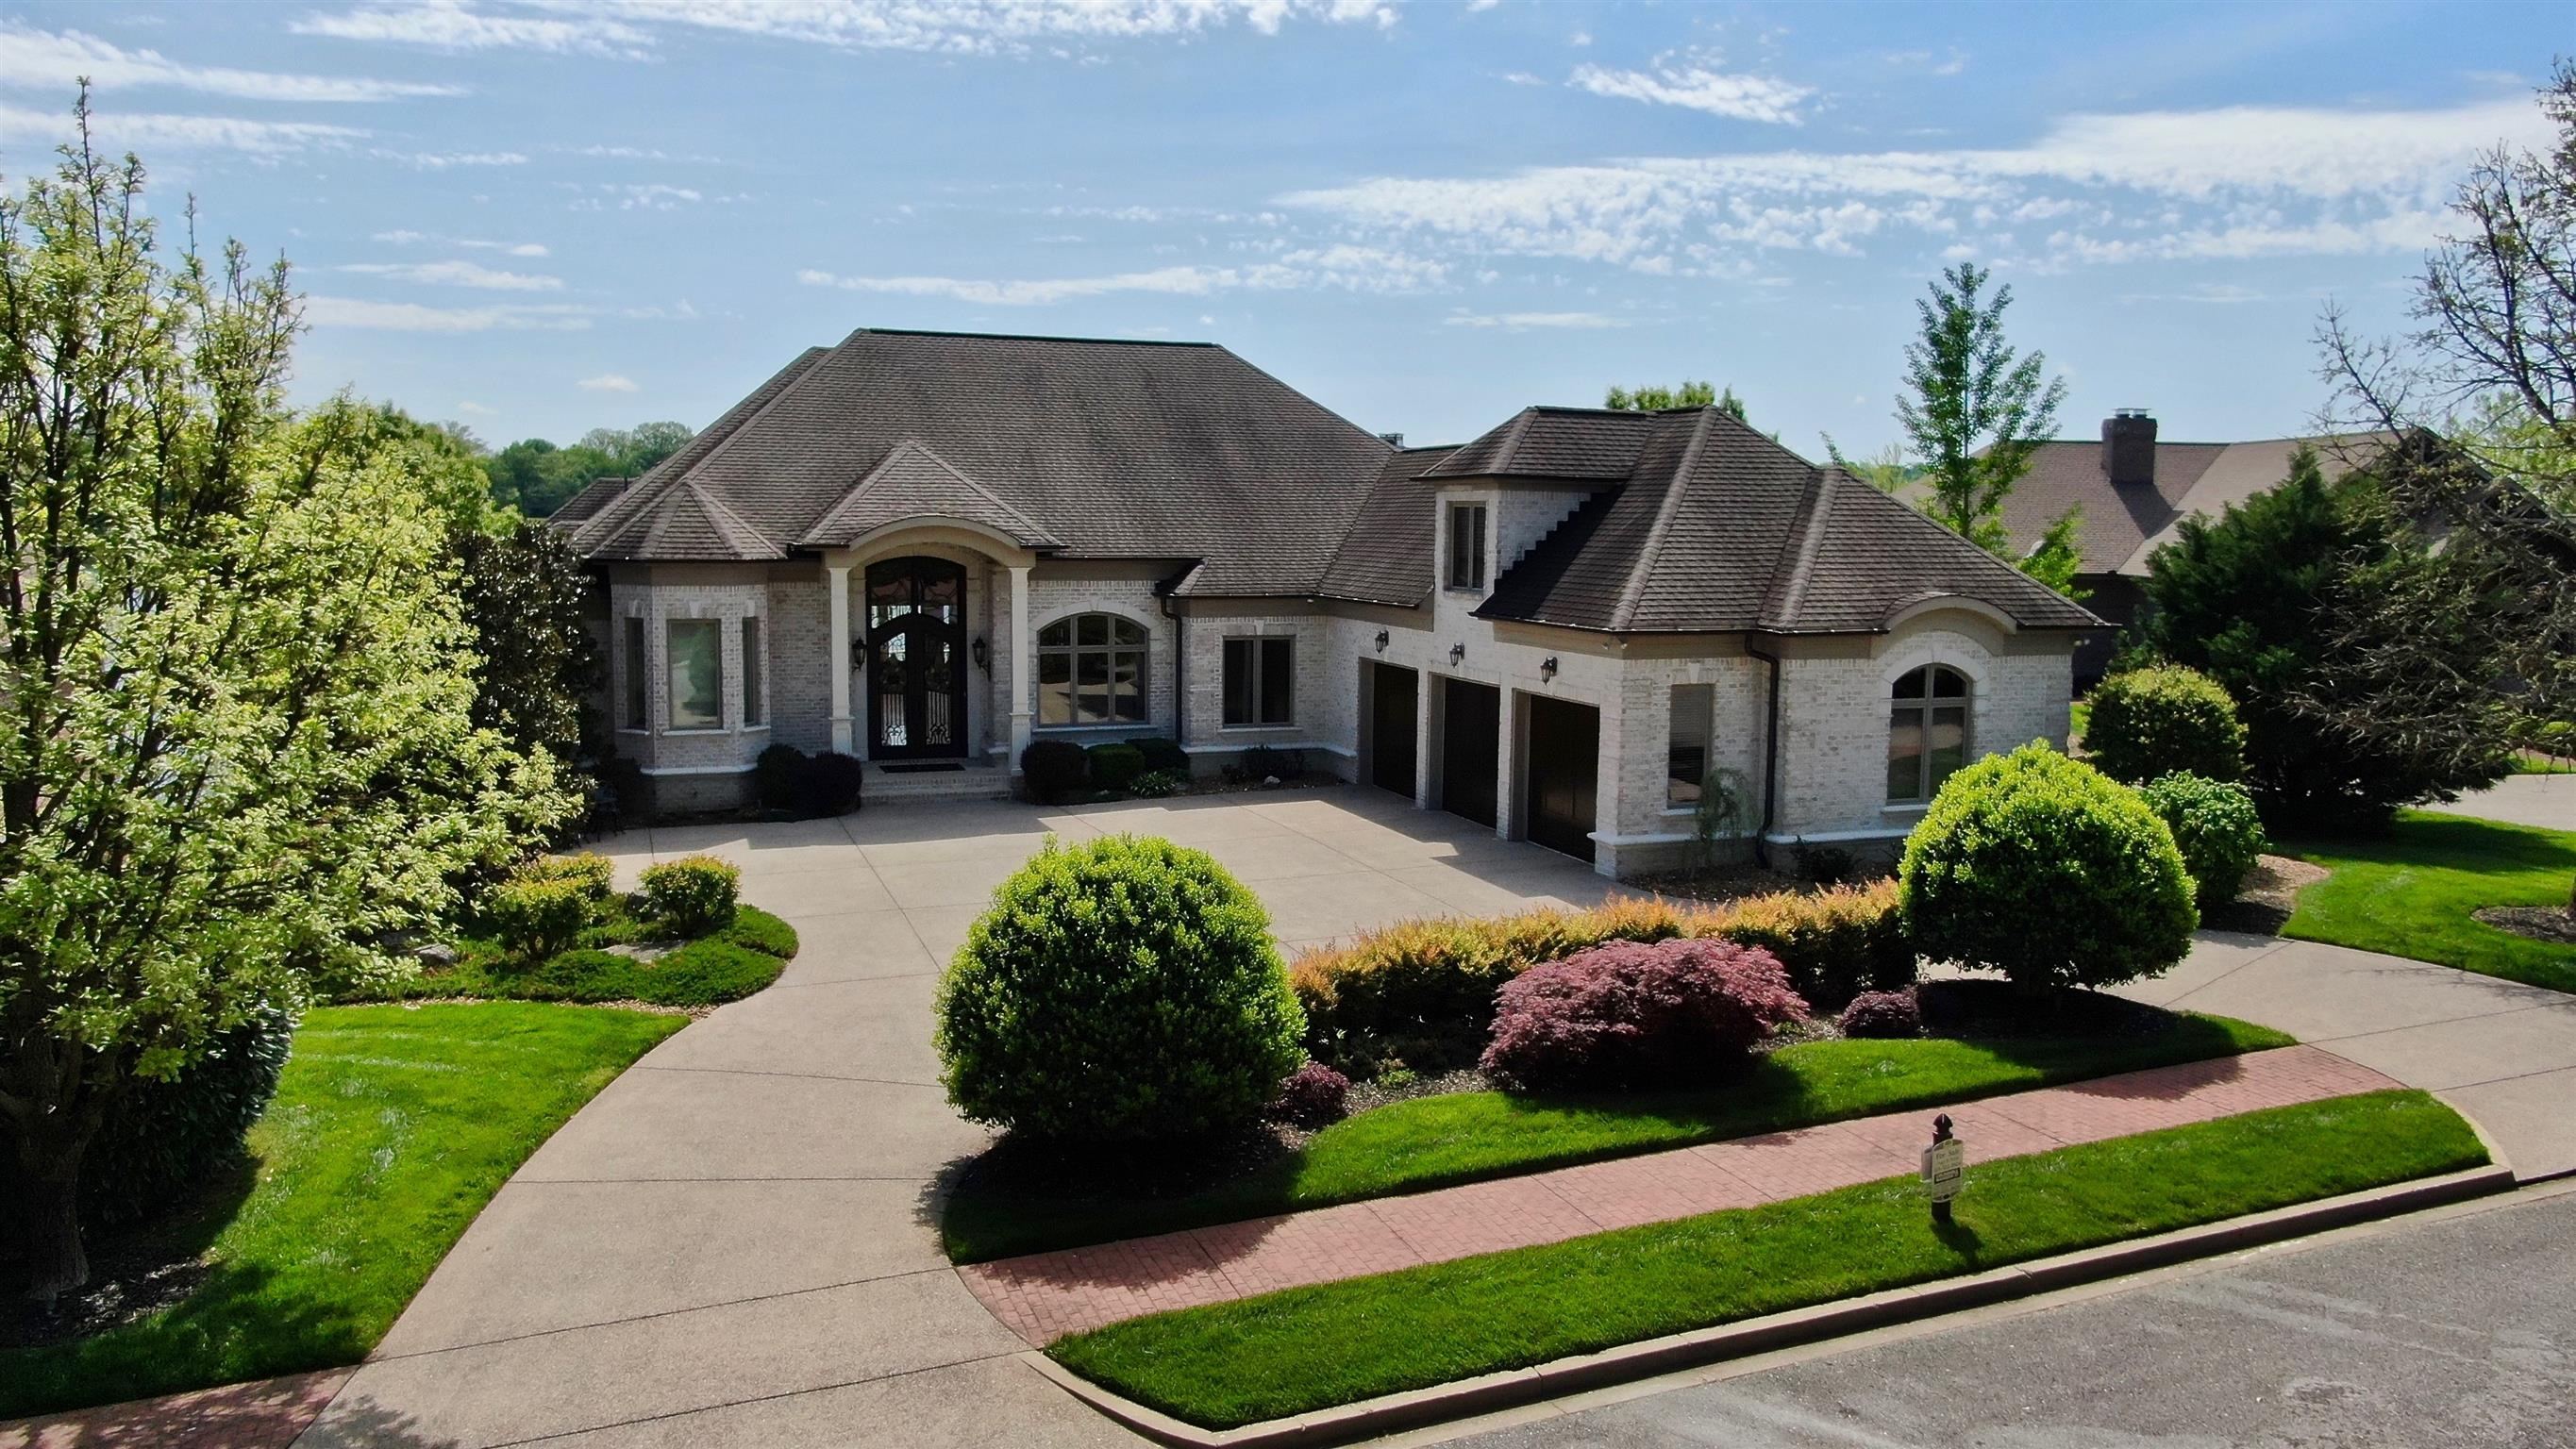 846 Pickwick Ct, Gallatin, Tennessee